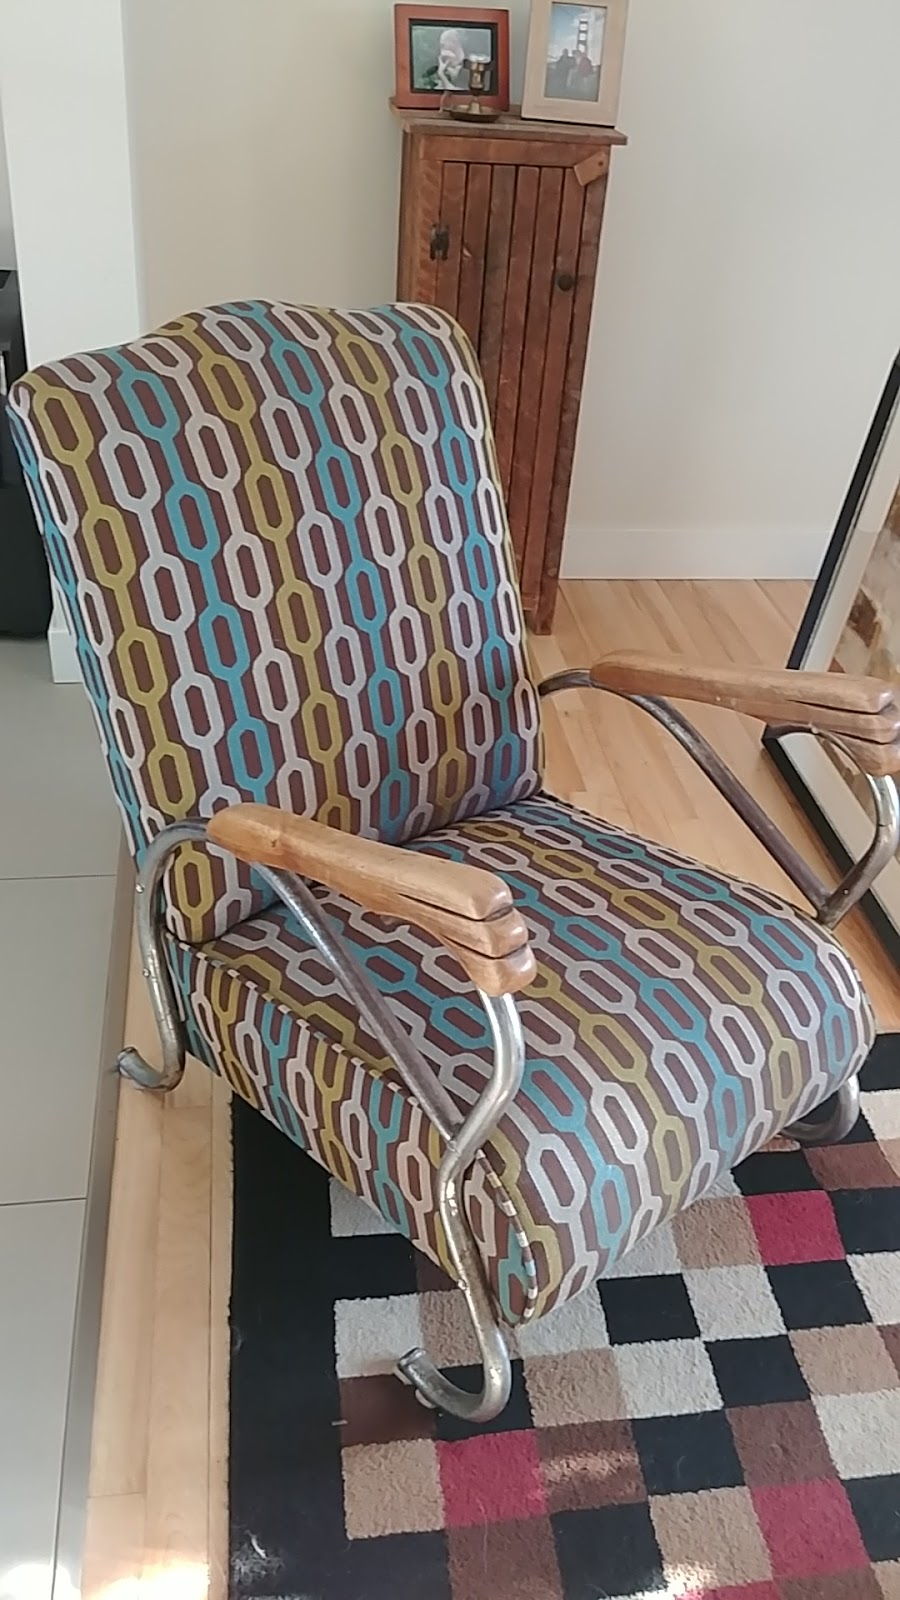 Melansons Re-Upholstering | furniture store | 2472 Route 132, Greater Lakeburn, NB E1H 1Z5, Canada | 5068570347 OR +1 506-857-0347